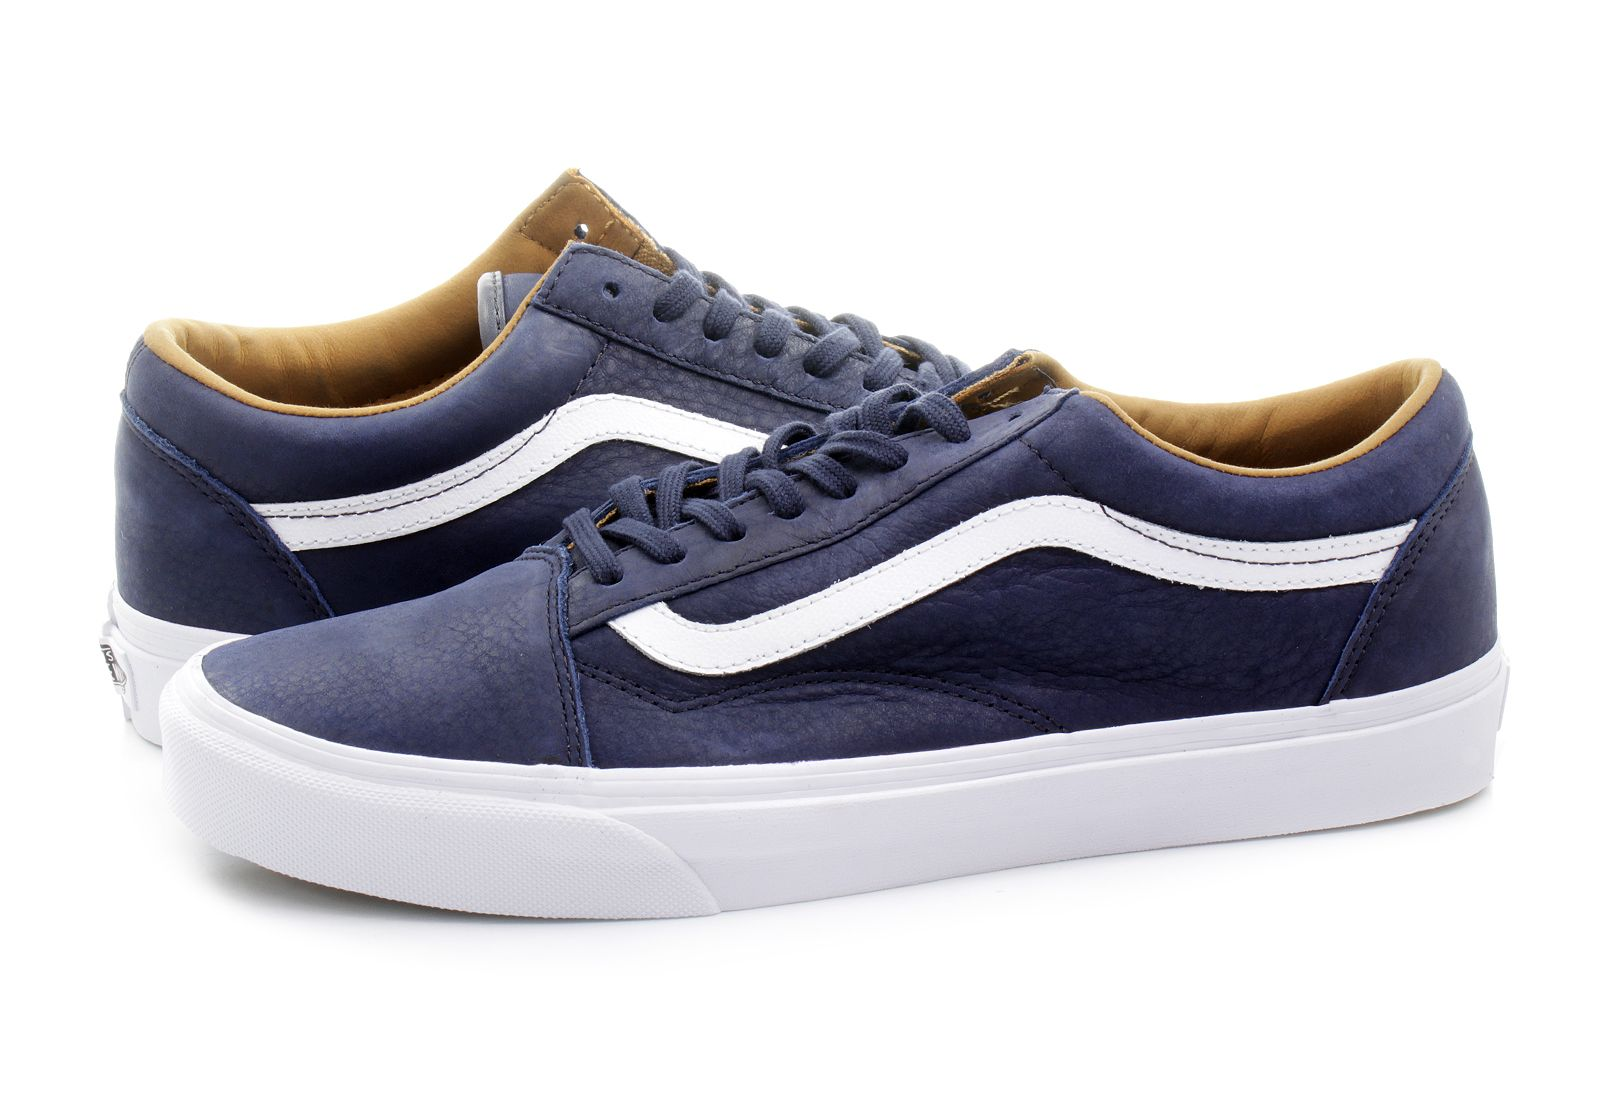 4dc7c798fe29d7 Vans Sneakers - Old Skool - VA38G1MRU - Online shop for sneakers ...